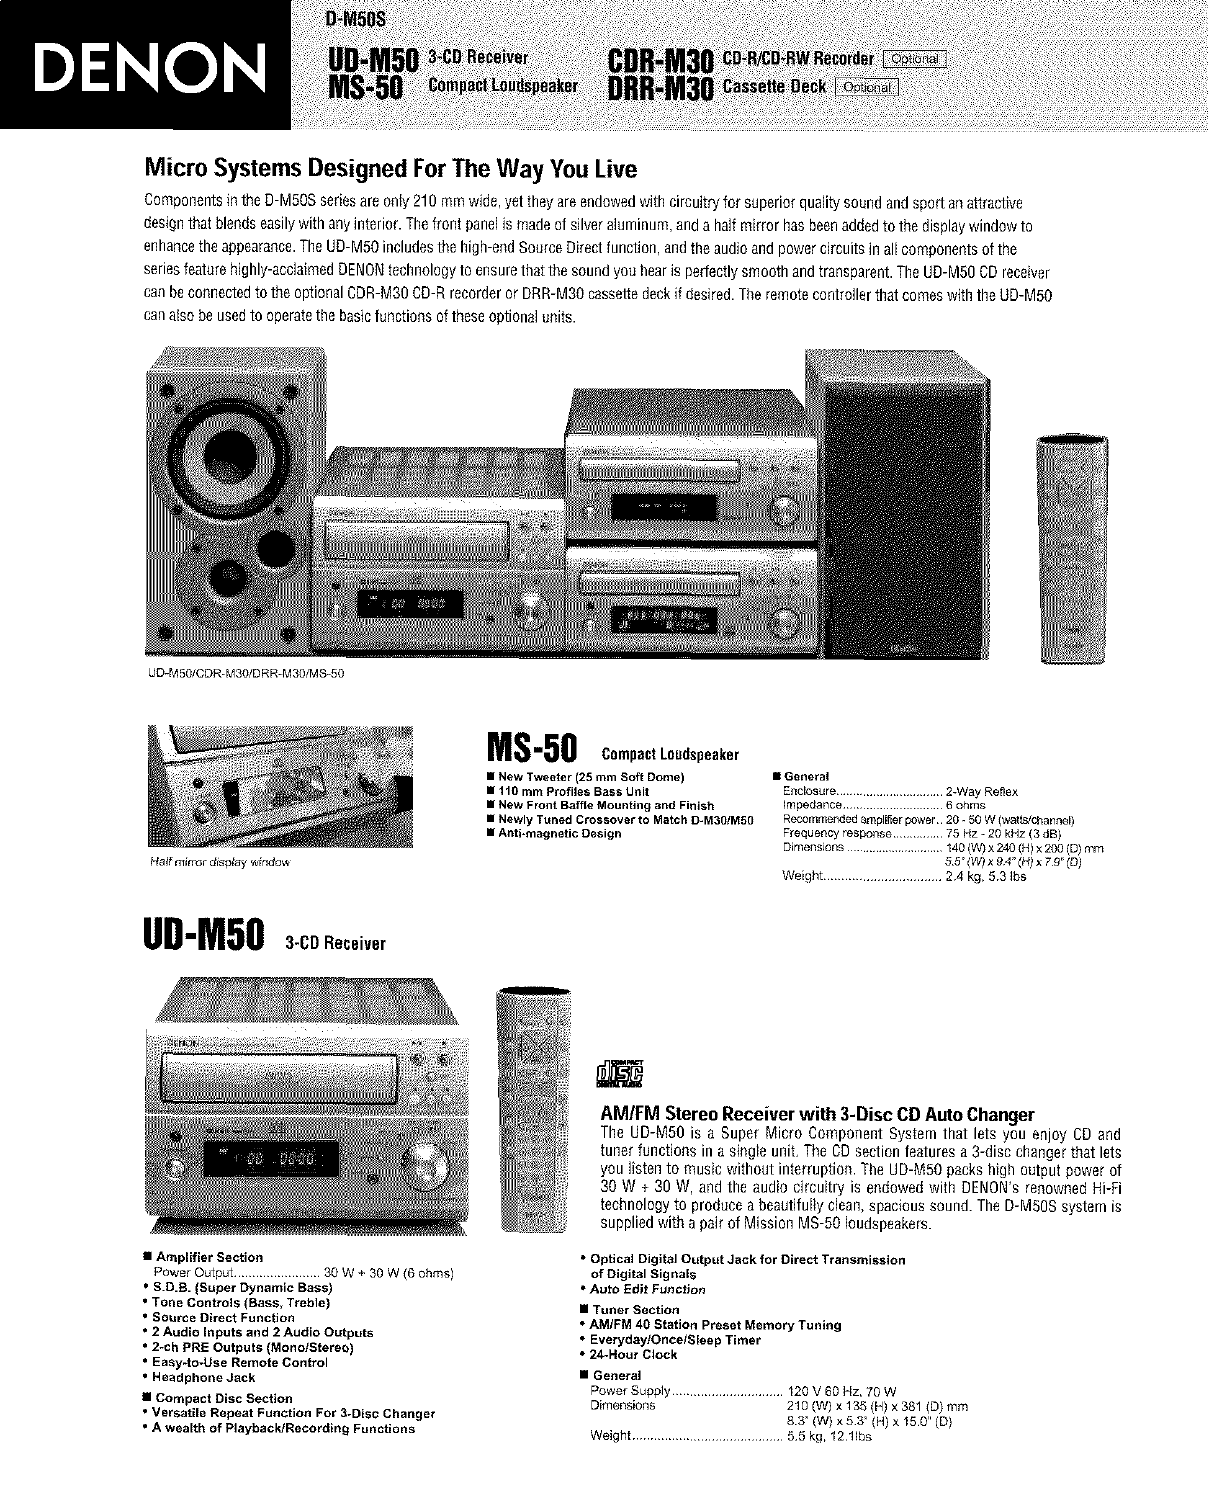 denon drr m30 user manual cassette deck manuals and guides l0211186 rh usermanual wiki denon ud-m50 owners manual